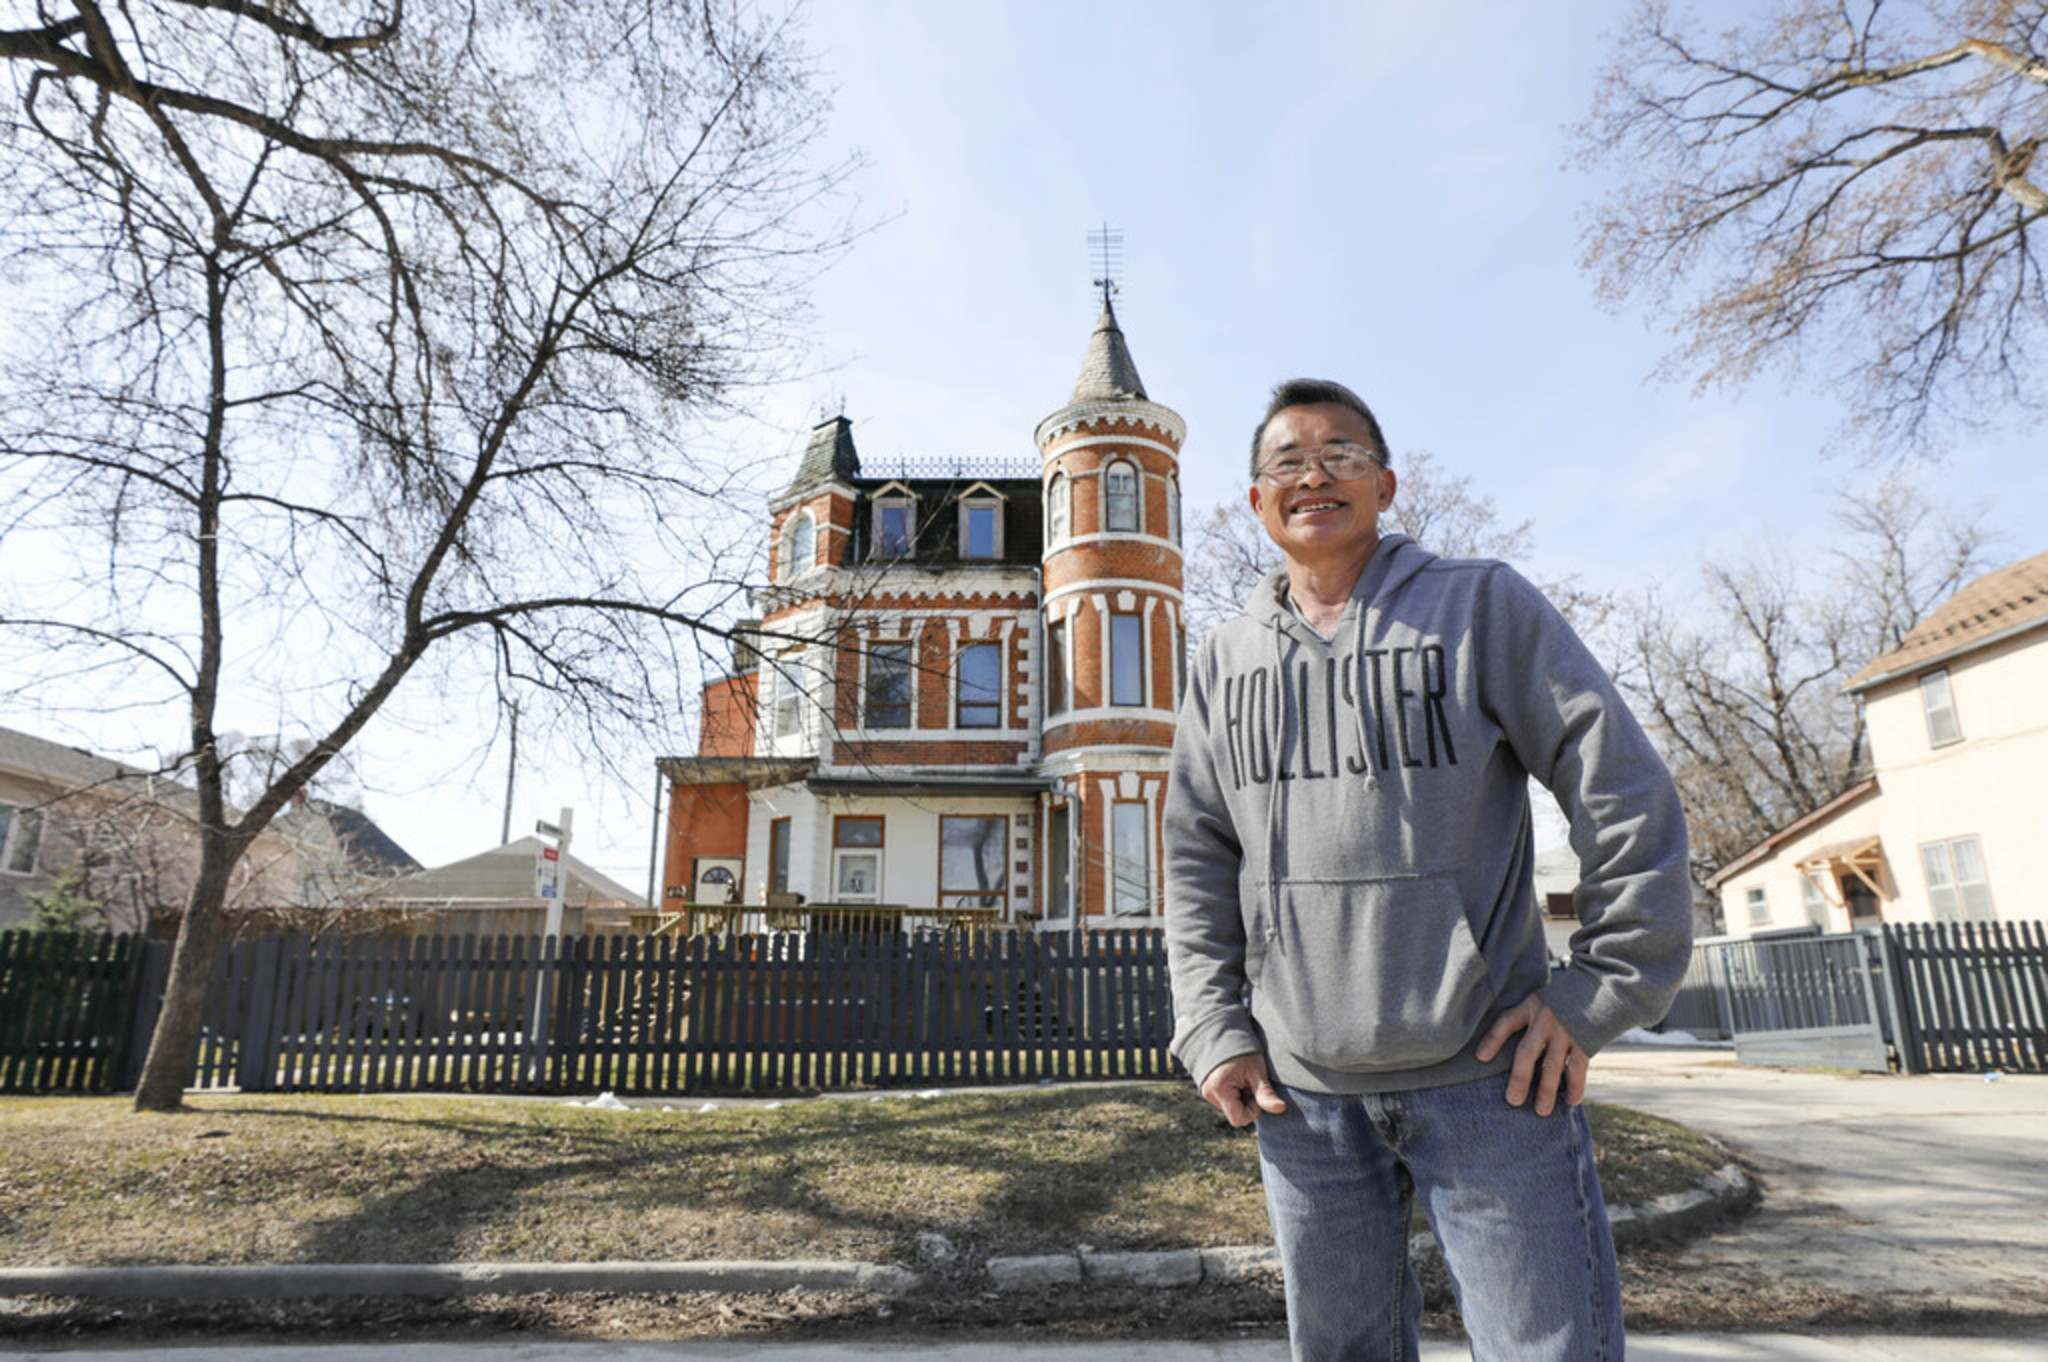 RUTH BONNEVILLE / WINNIPEG FREE PRESS</p><p>Vanh Hoang, a 63-year-old surgeon who migrated to Canada in 2015 from Vietnam, is working to restore the interior of a castle on College Avenue while it is on the market.</p>